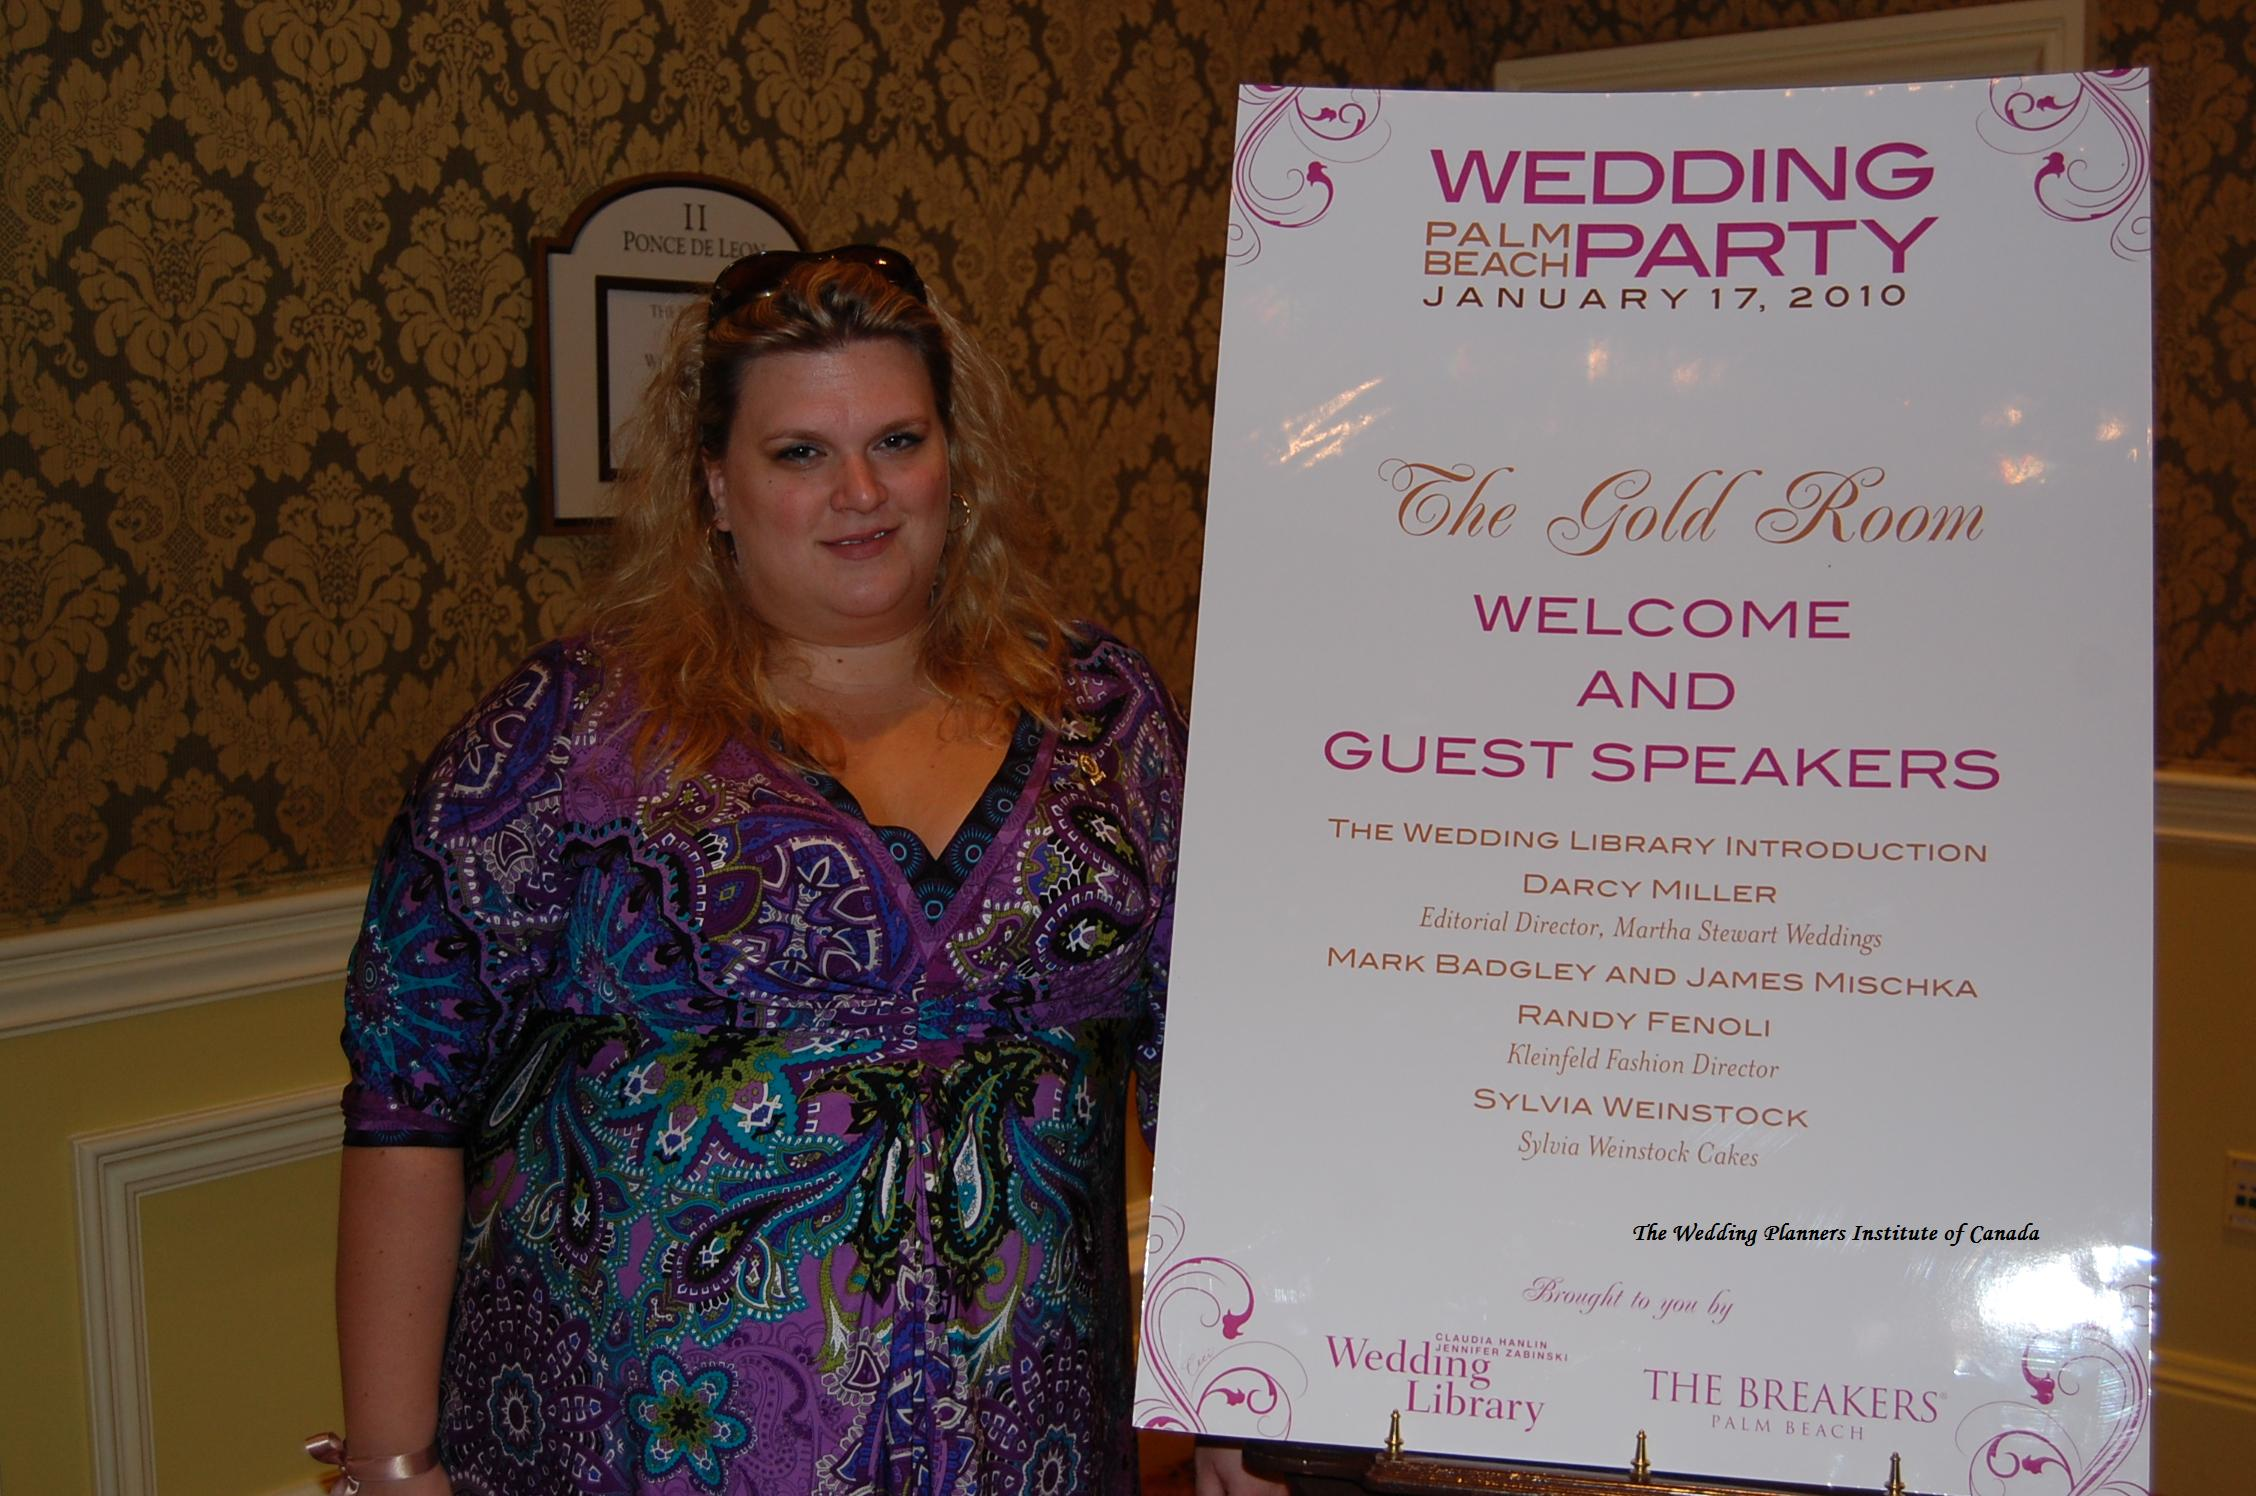 Danielle Andrews Sunkel Wedding Party Palm Beach